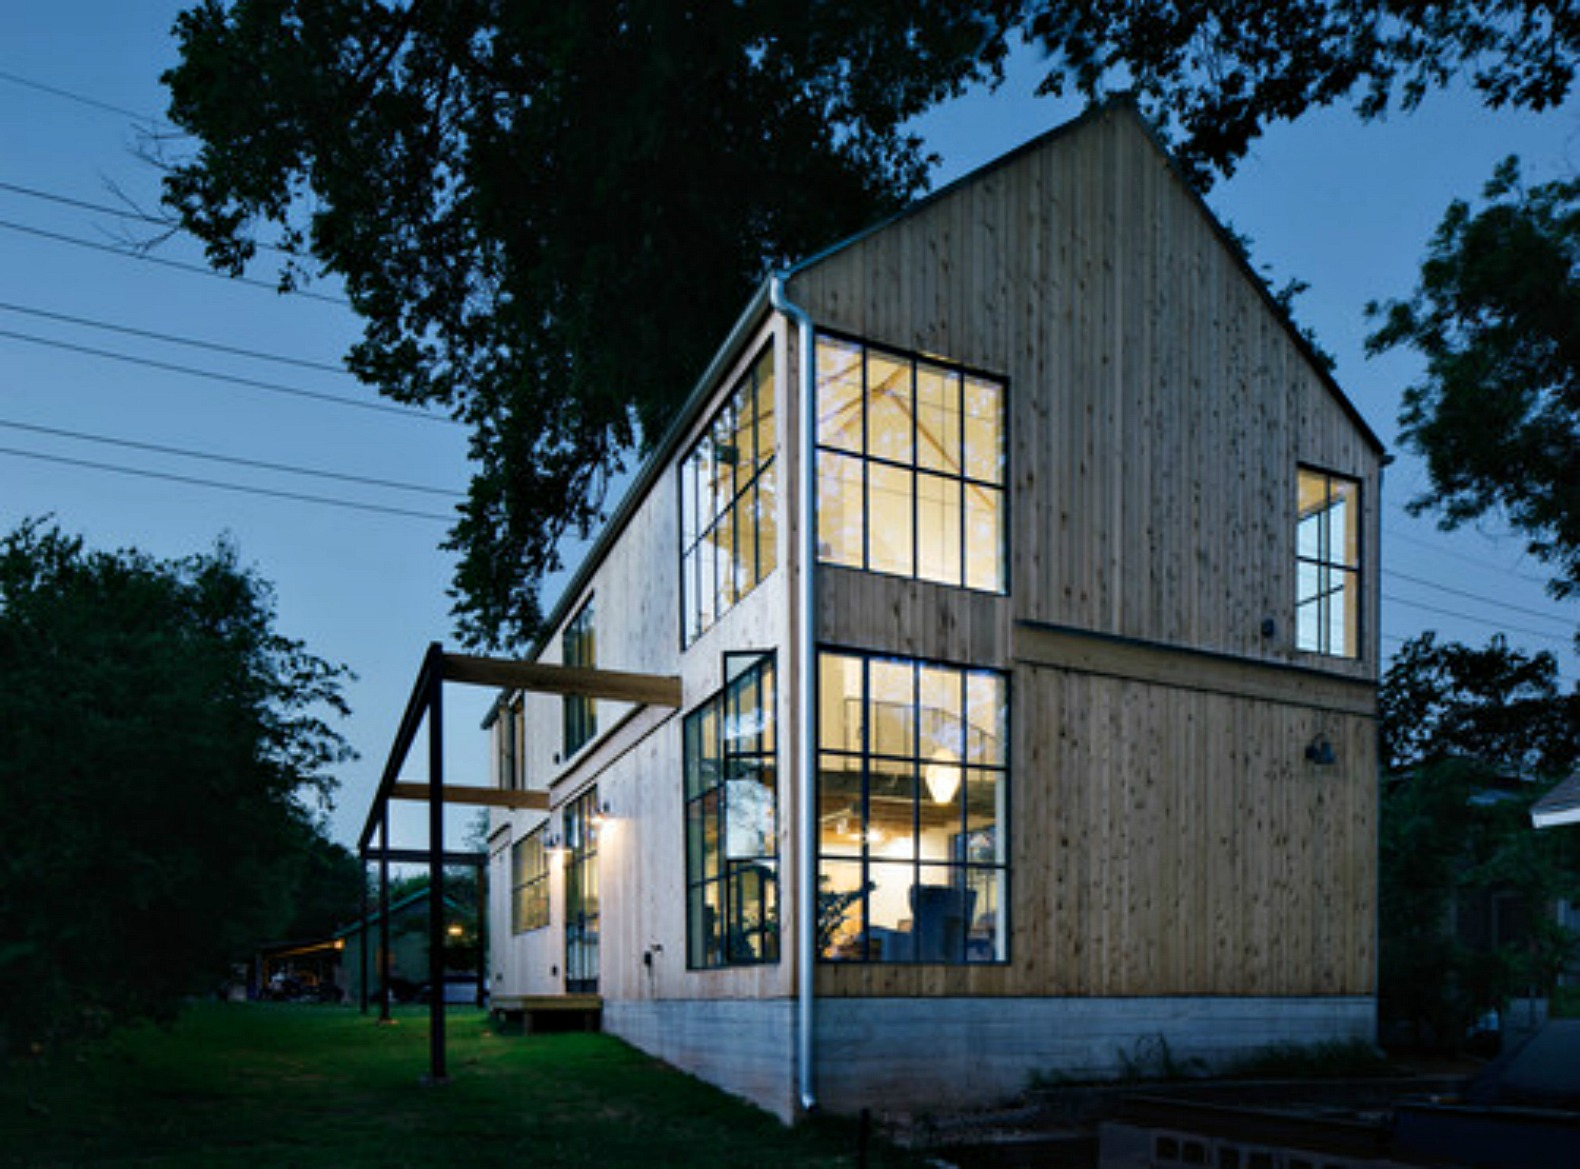 Bucolic Texas Home Pays Homage To The Stateu0027s Many Barns And Stables Part 36